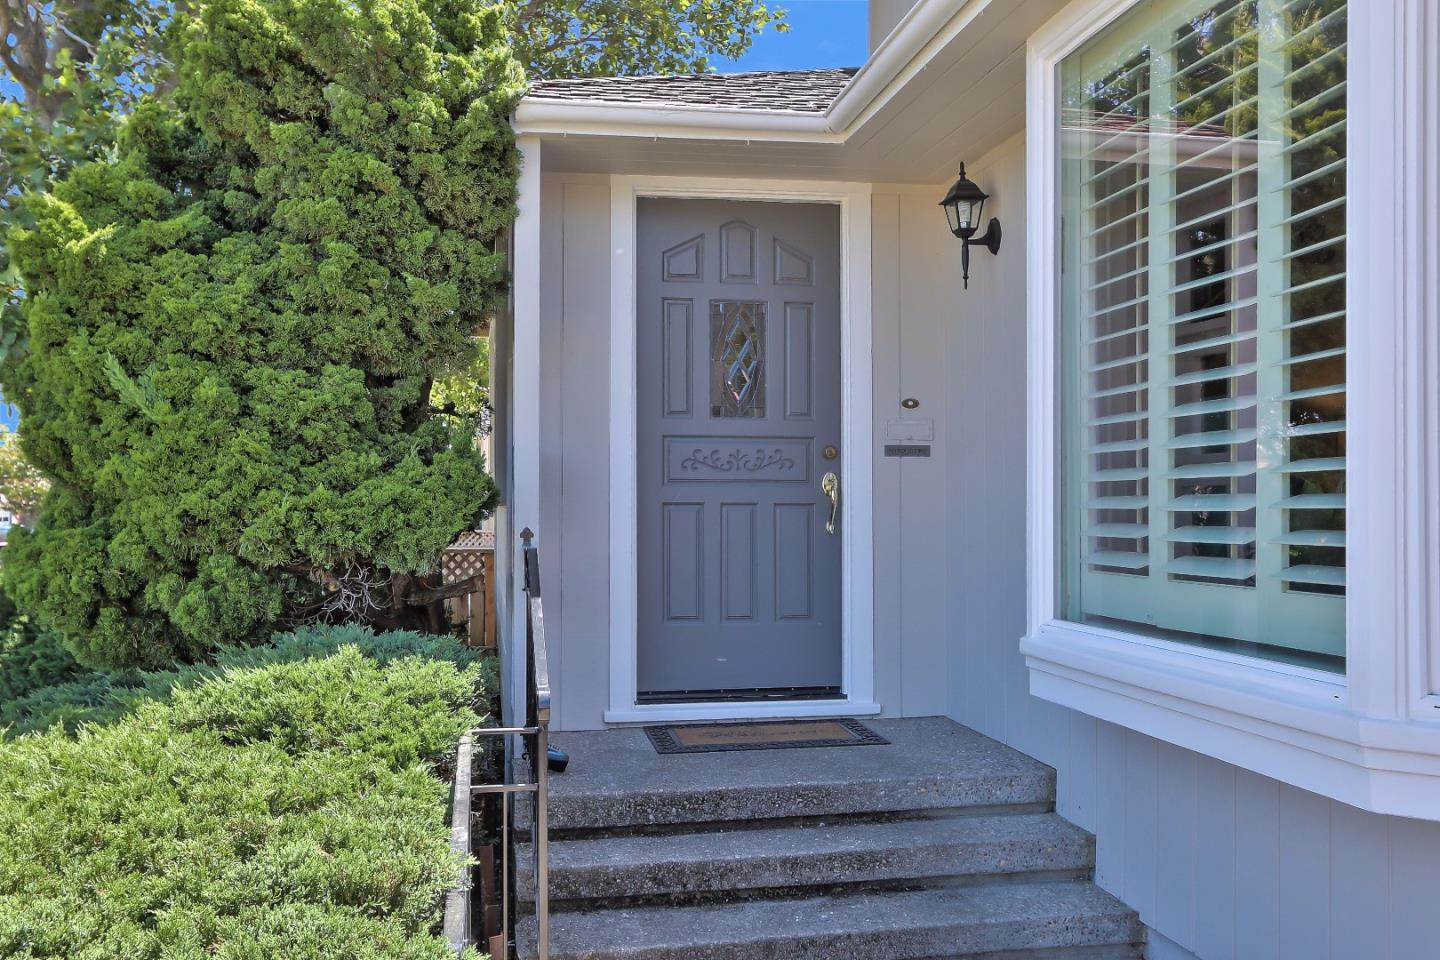 Additional photo for property listing at 1122 Hawthorne Dr  SAN MATEO, CALIFORNIA 94402